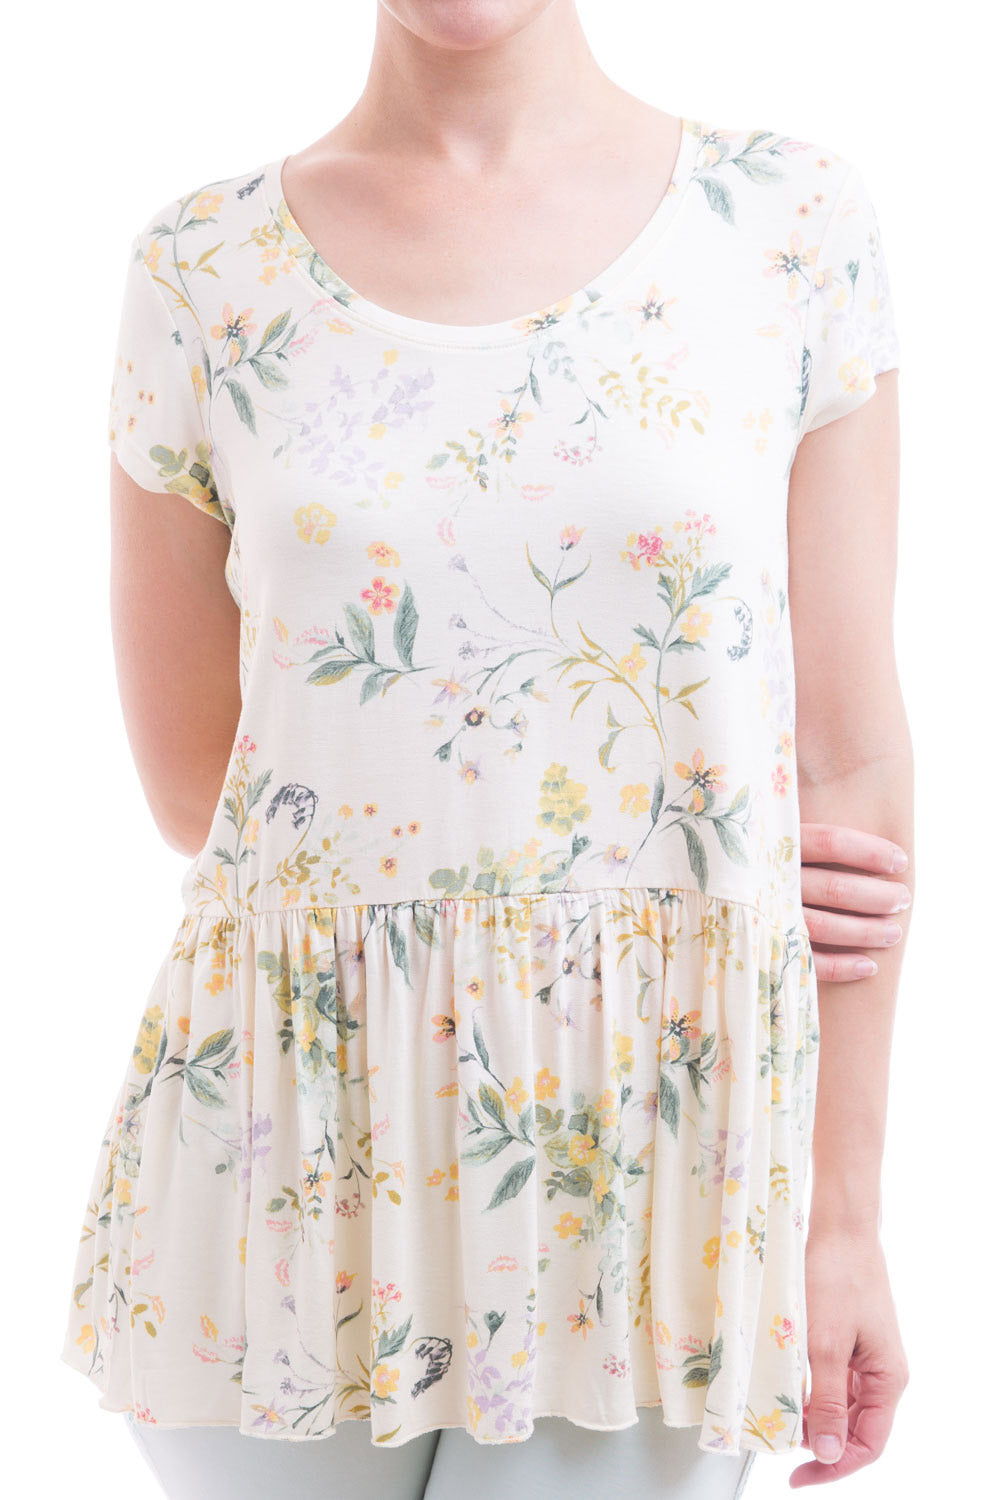 Type 2 Carefree Day Top In Wispy Flower